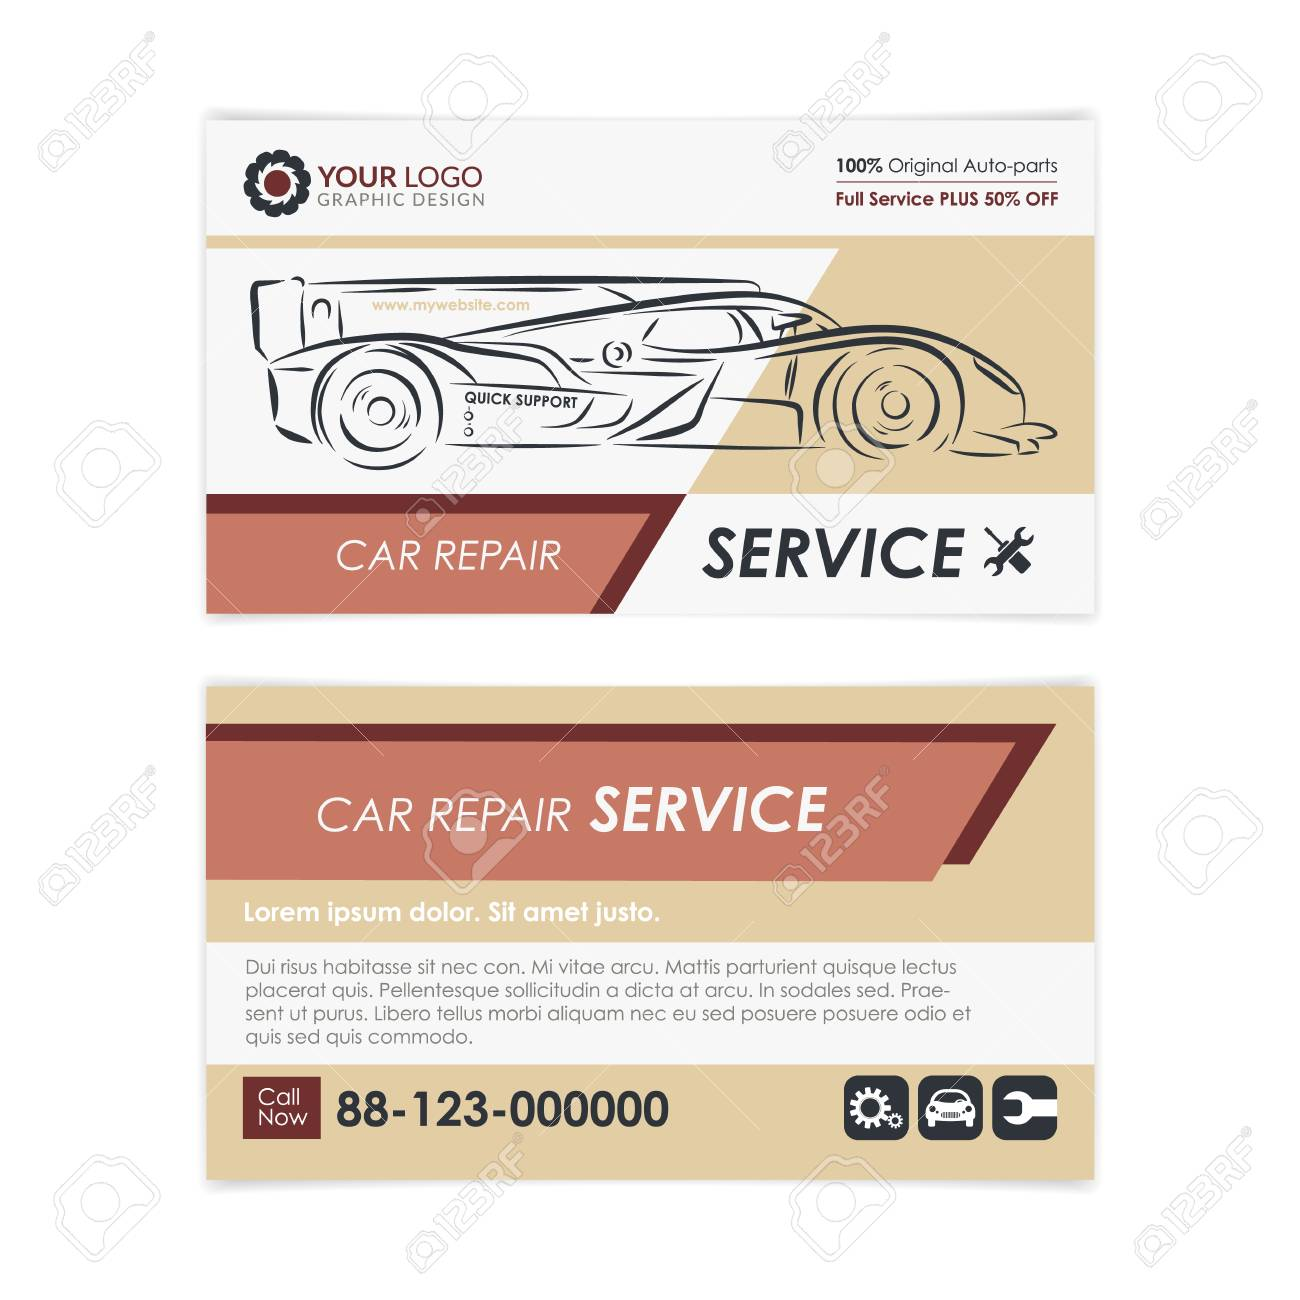 Vintage auto repair business card template create your own business vector vintage auto repair business card template create your own business cards mockup vector illustration reheart Choice Image